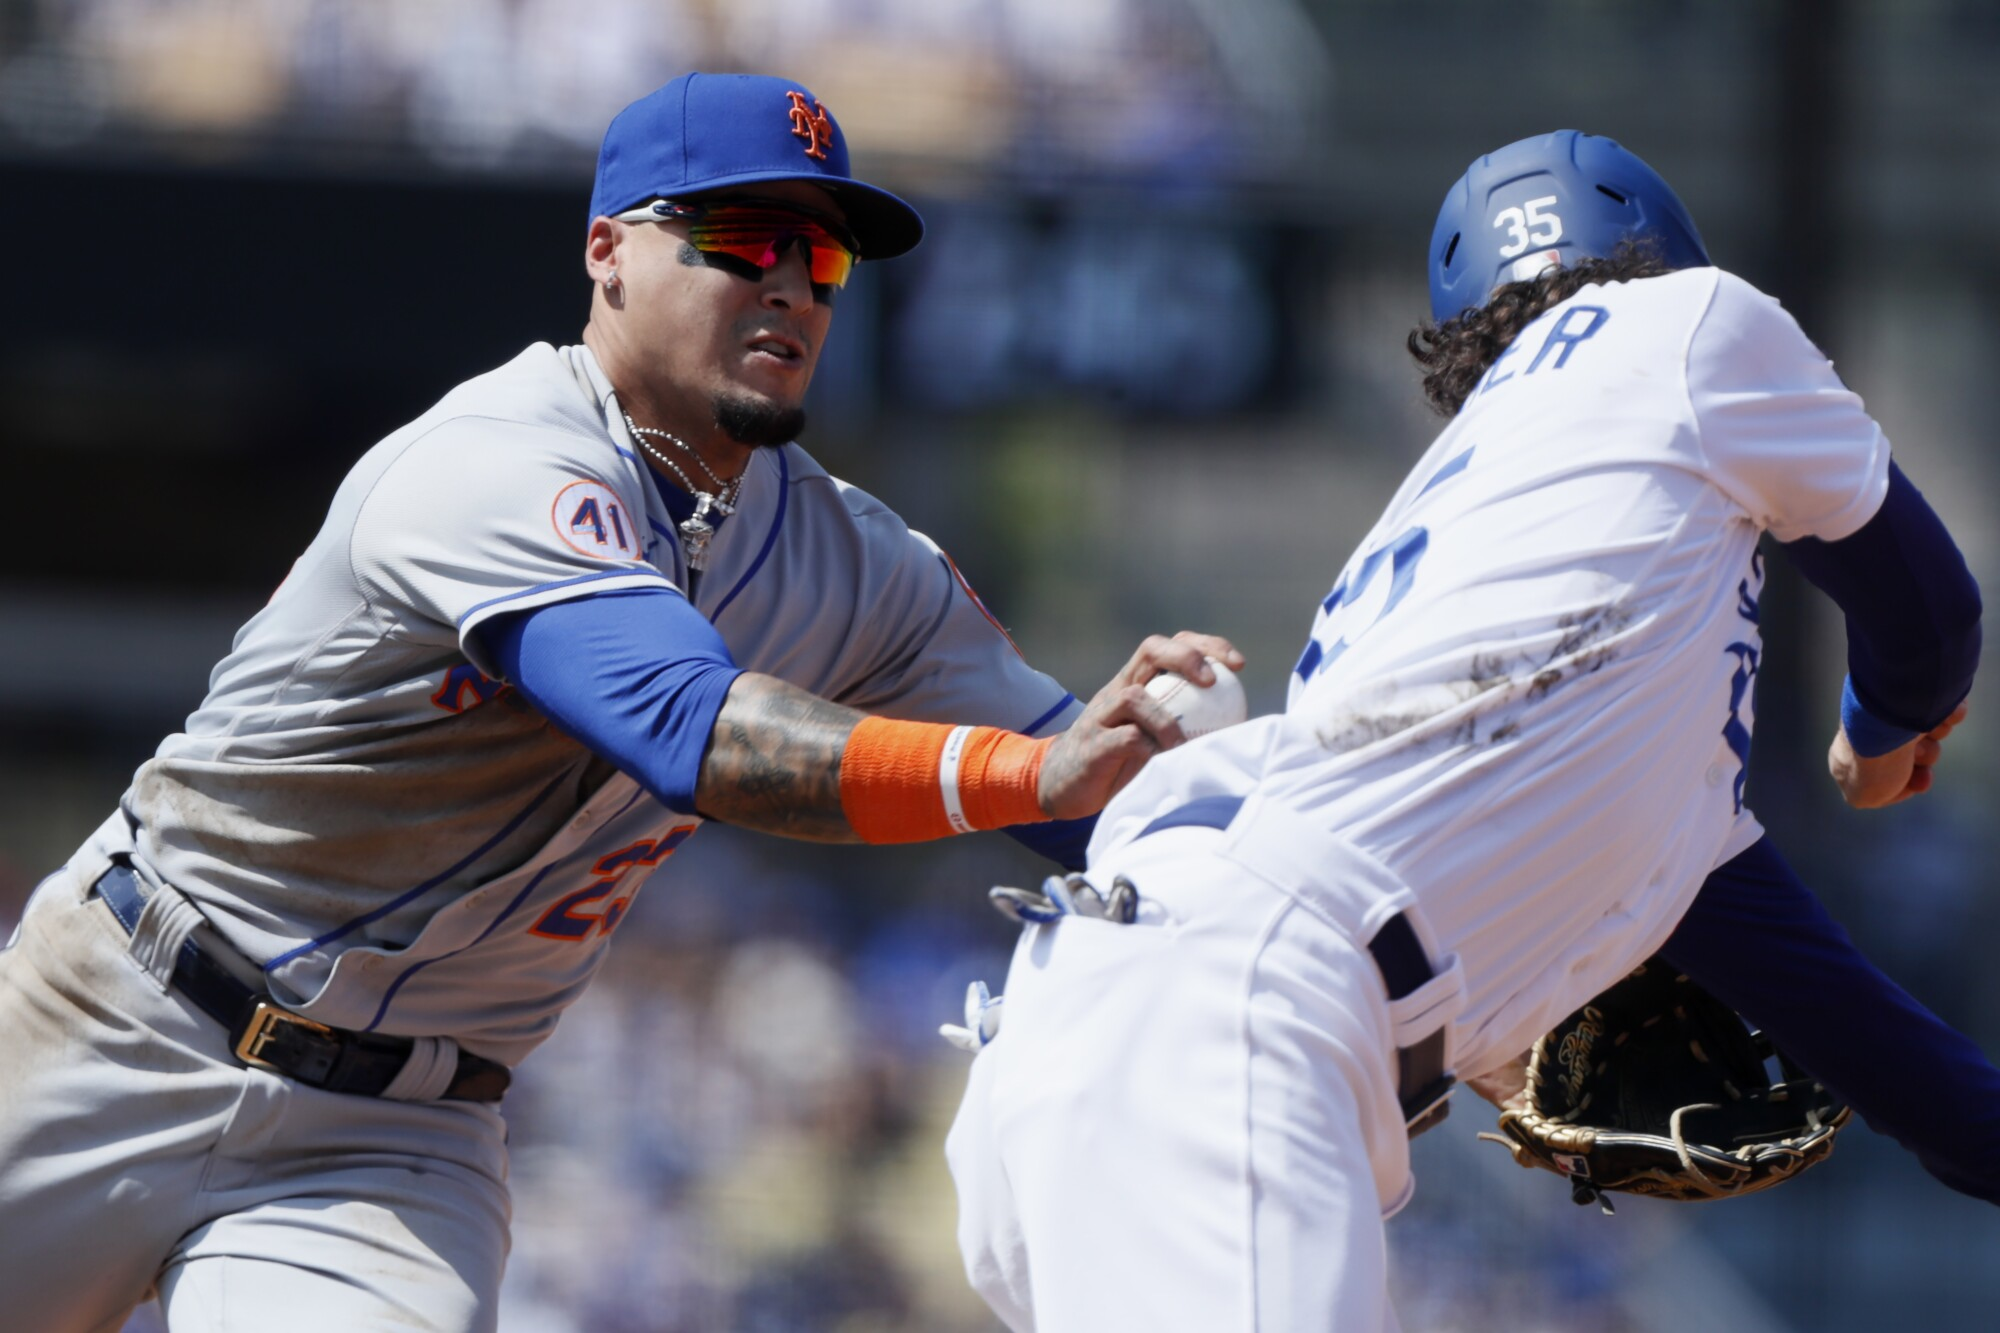 Mets shortstop Javier Baez tags out Cody Bellinger on a steal attempt during the fourth inning.